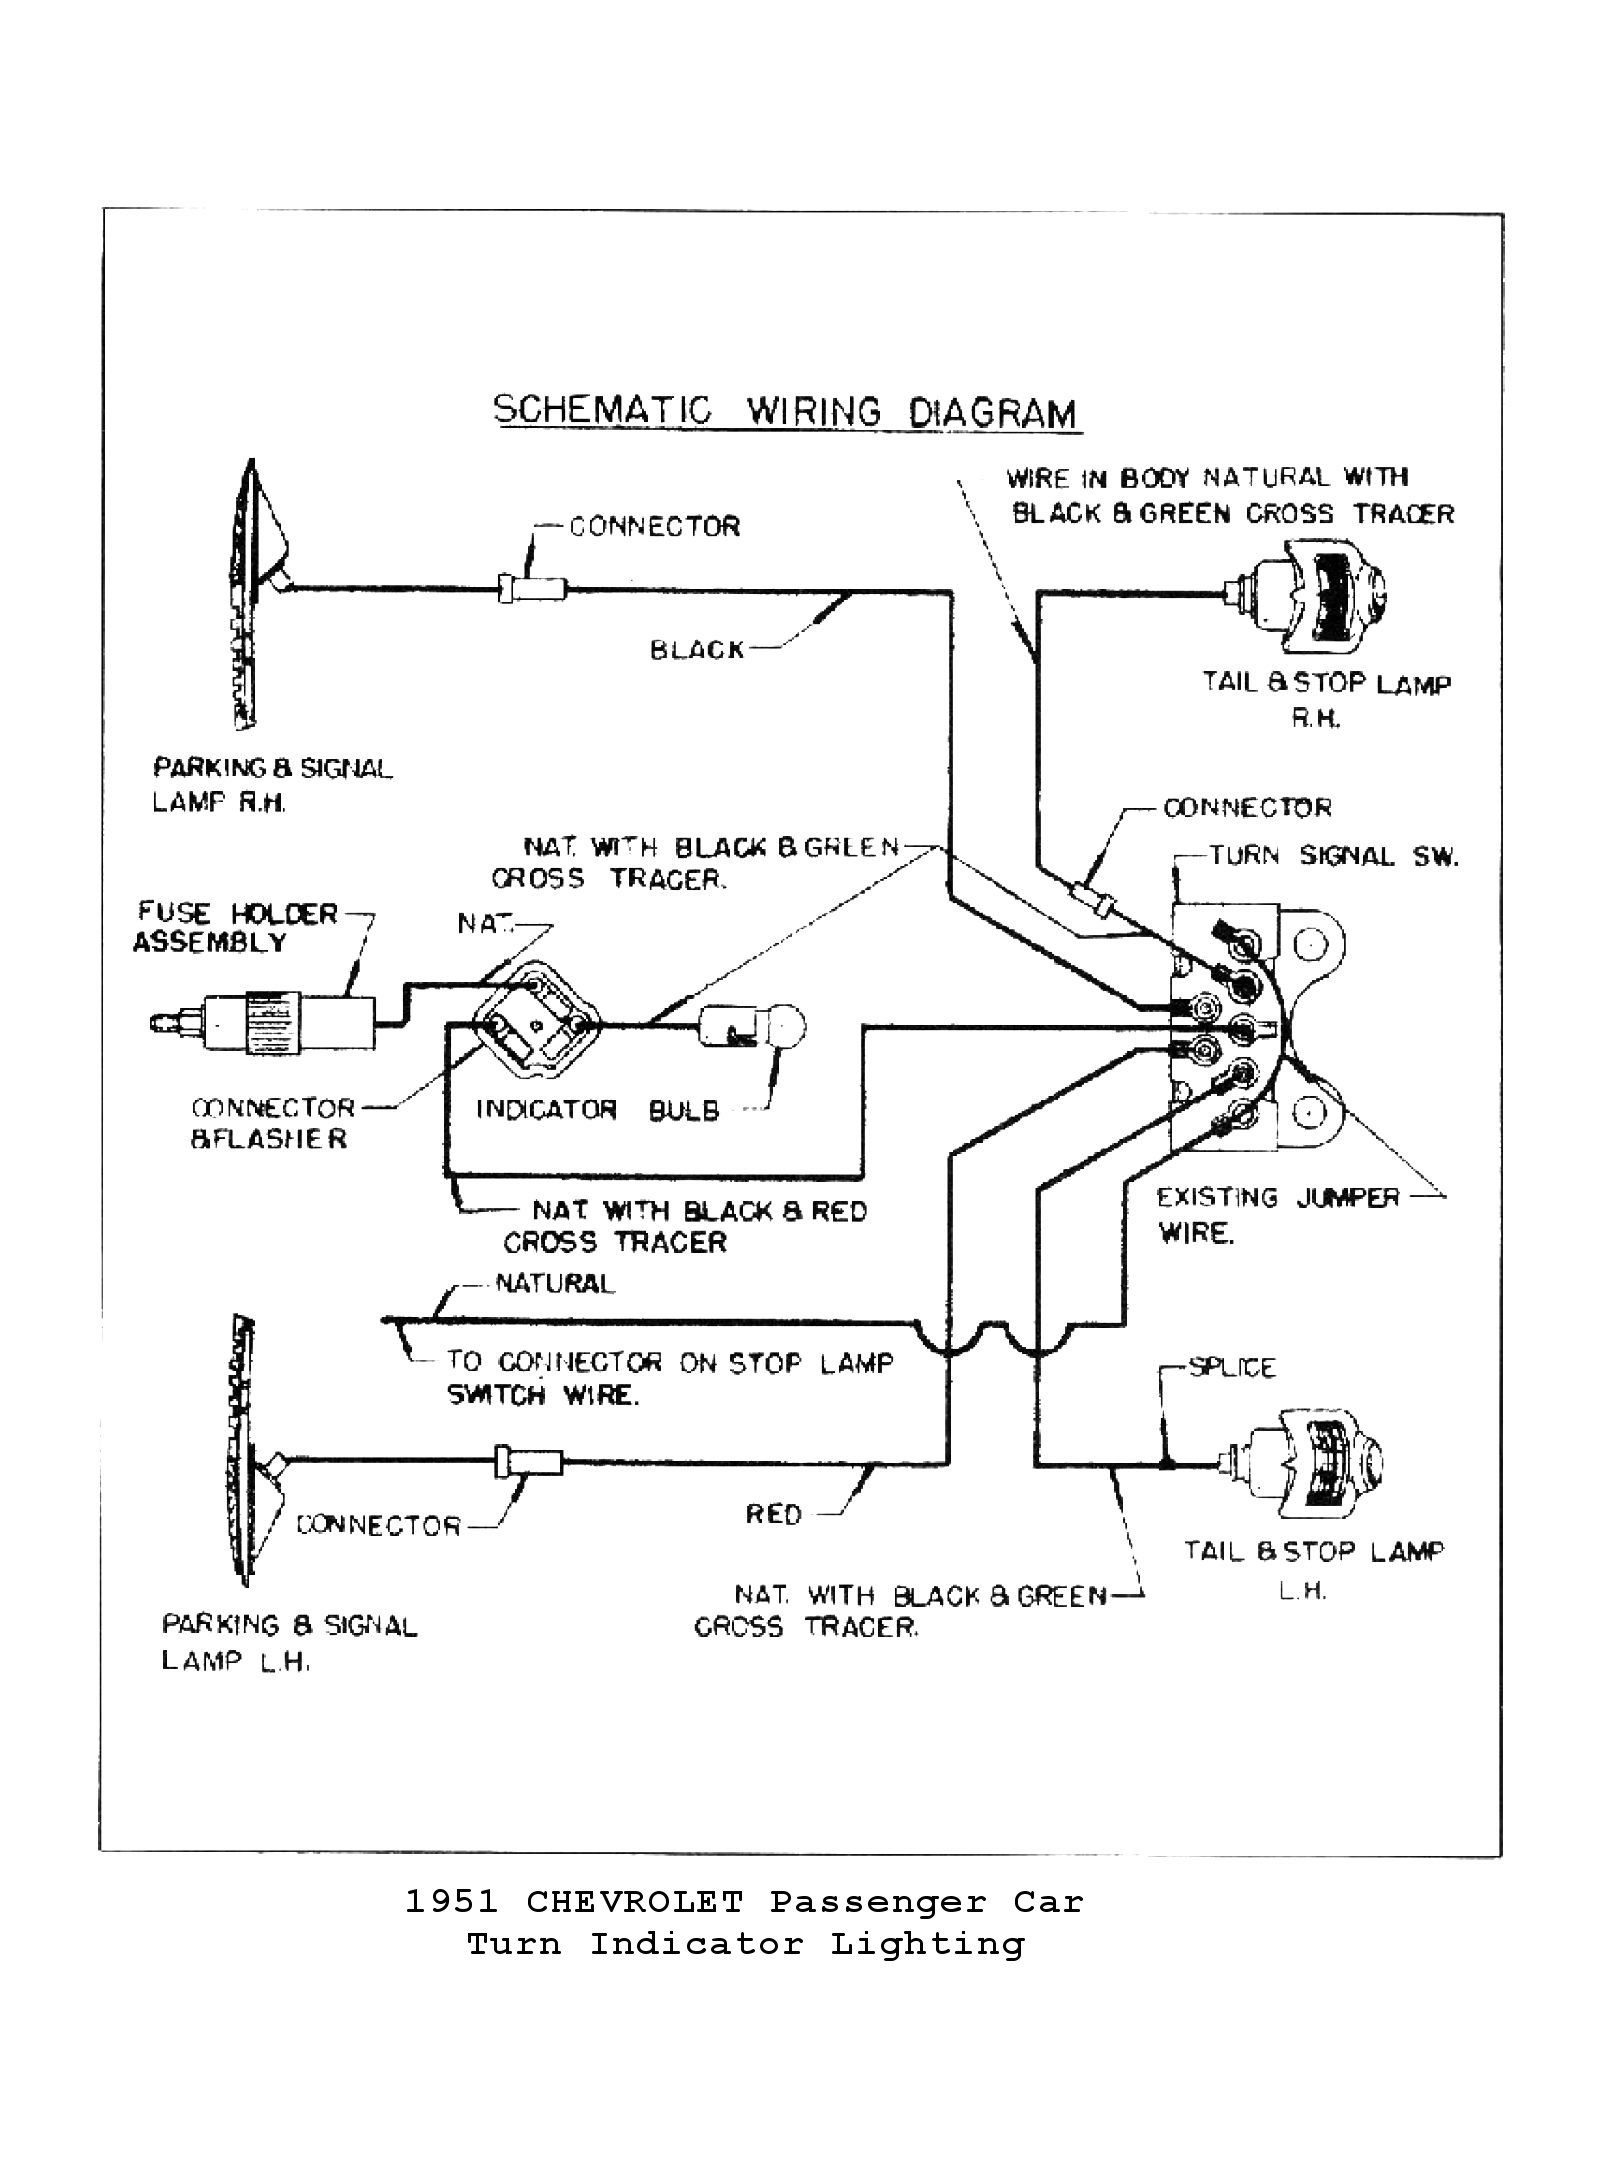 1958 Oldsmobile Wiring Diagram Library 72 Chevy Diagrams A Non Computer 700r4 1951 Olds